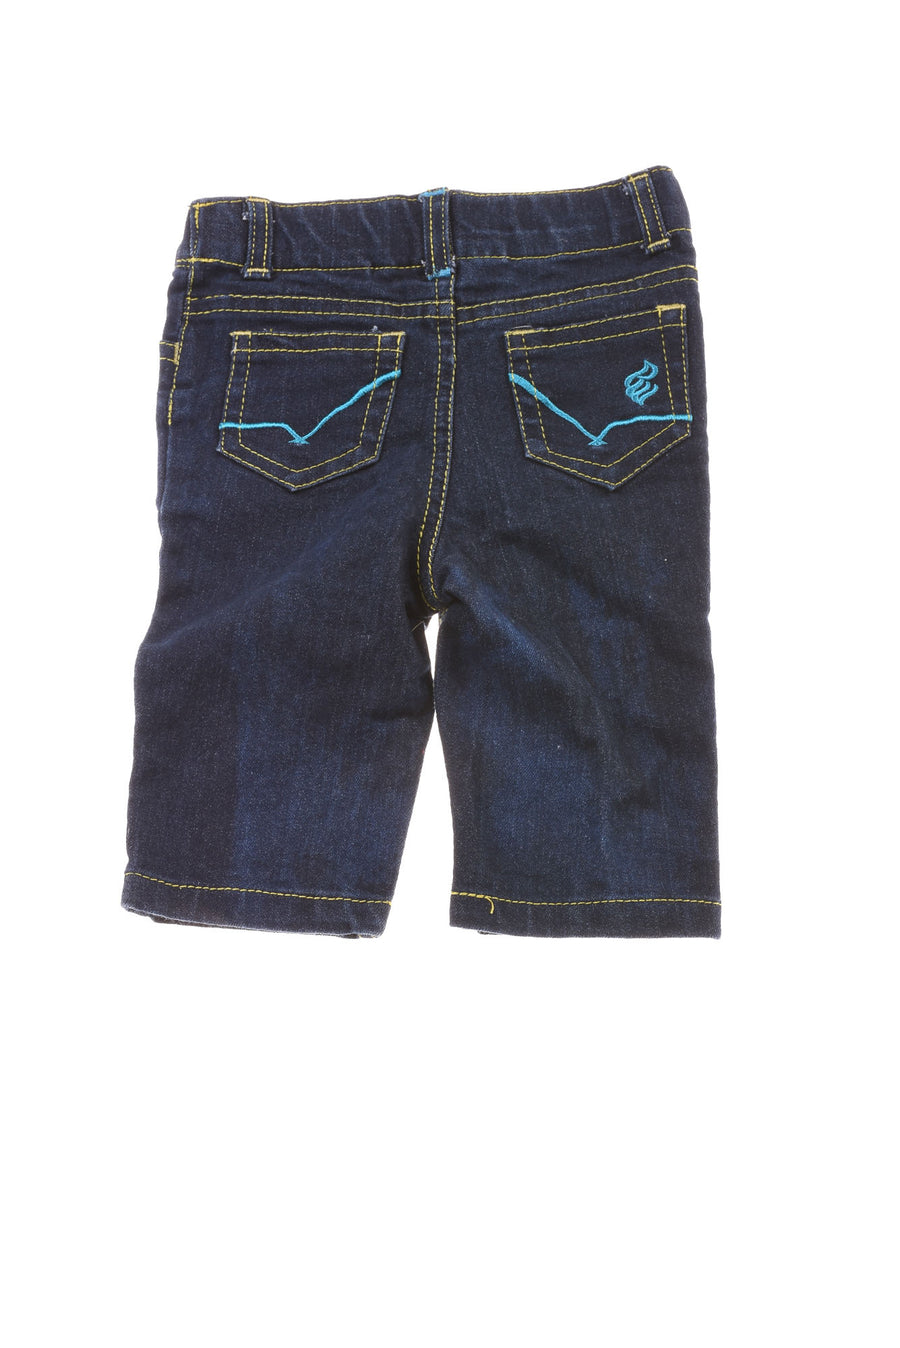 USED Rocawear Baby Girl's Pants 3-6 Months Blue